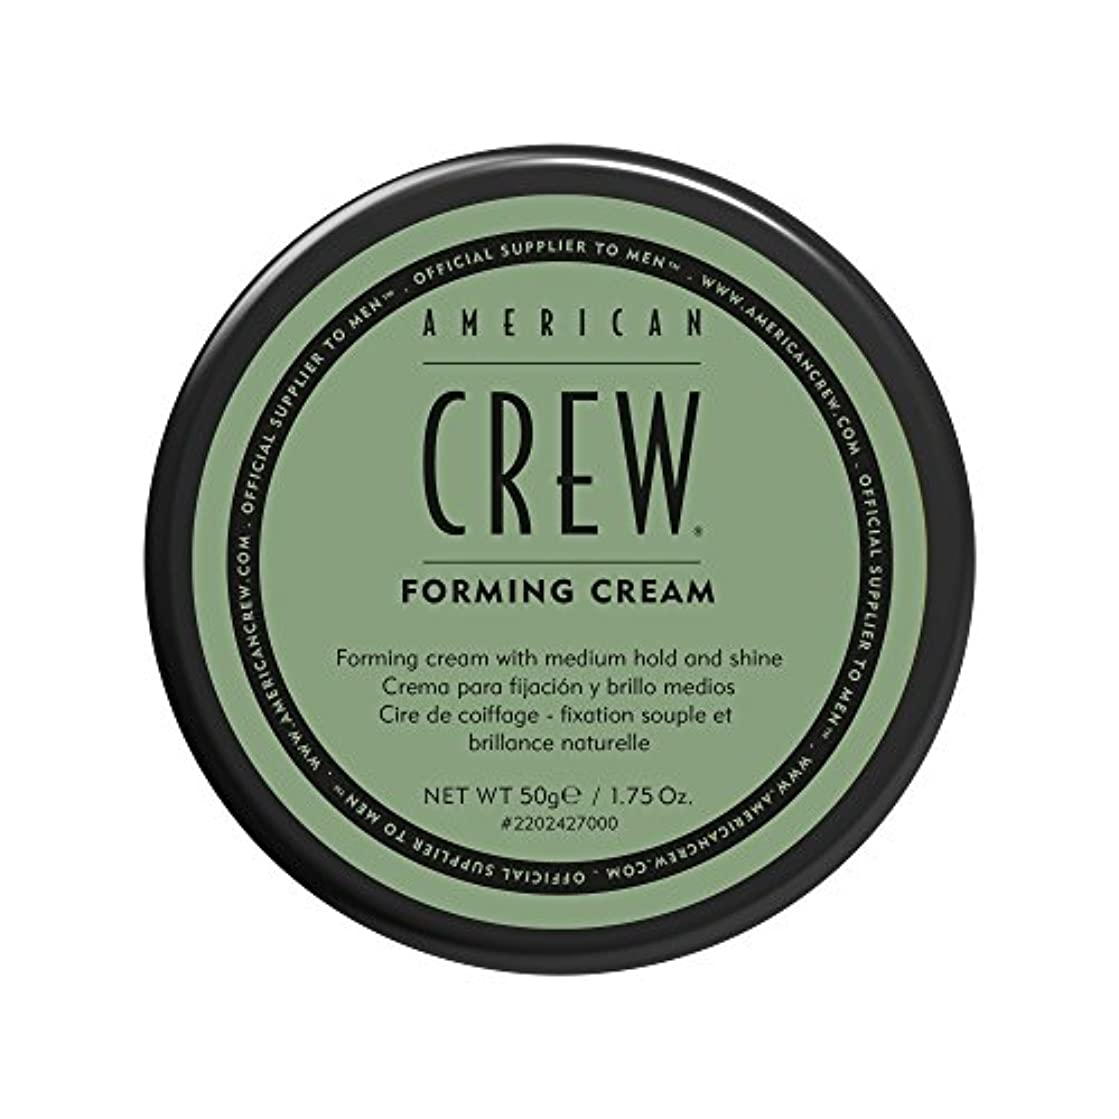 by American Crew FORMING CREAM 1.75 OZ by AMERICAN CREW